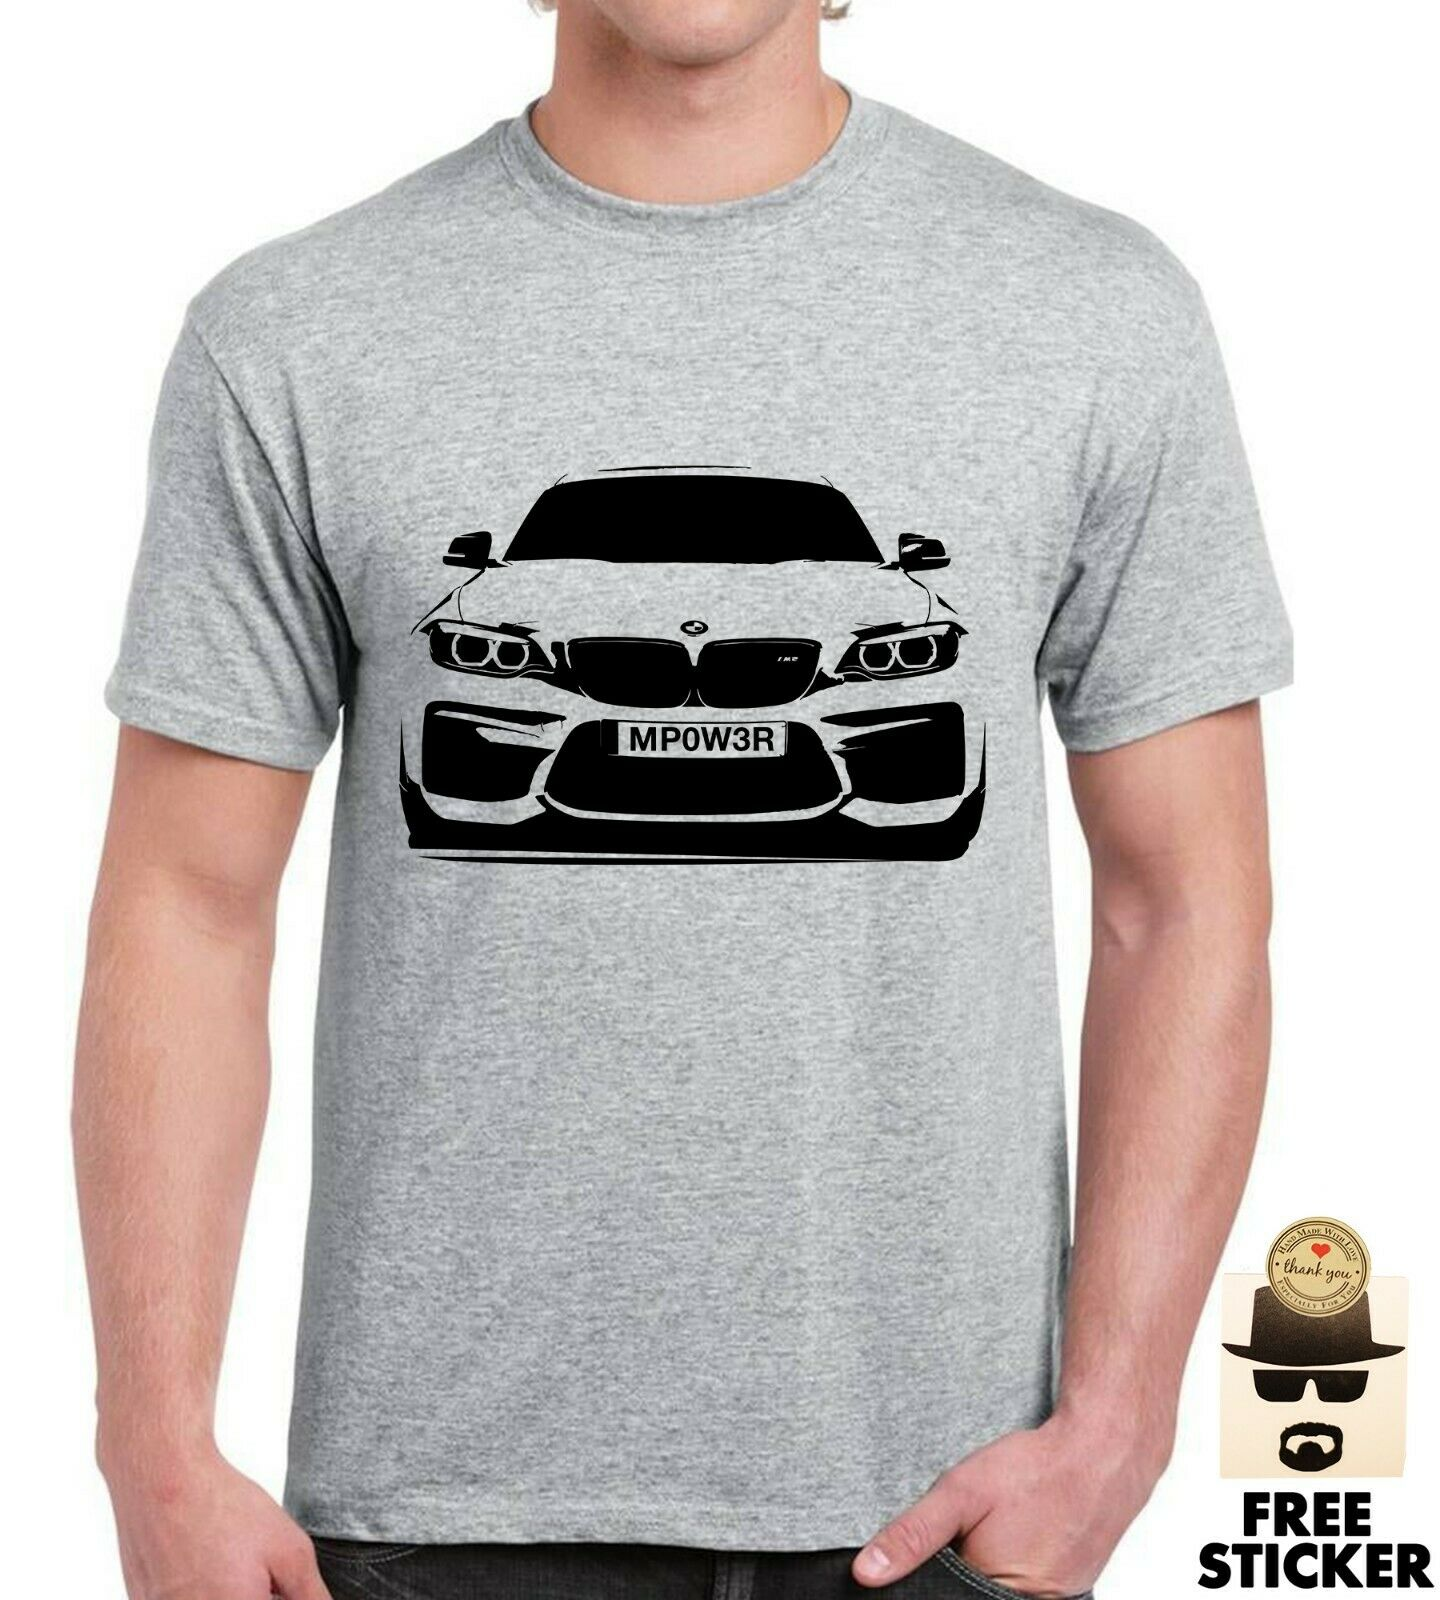 BMW M Power CUSTOM Plate T Shirt Personalised Car Mpower Motor Top Size Upto 3XL